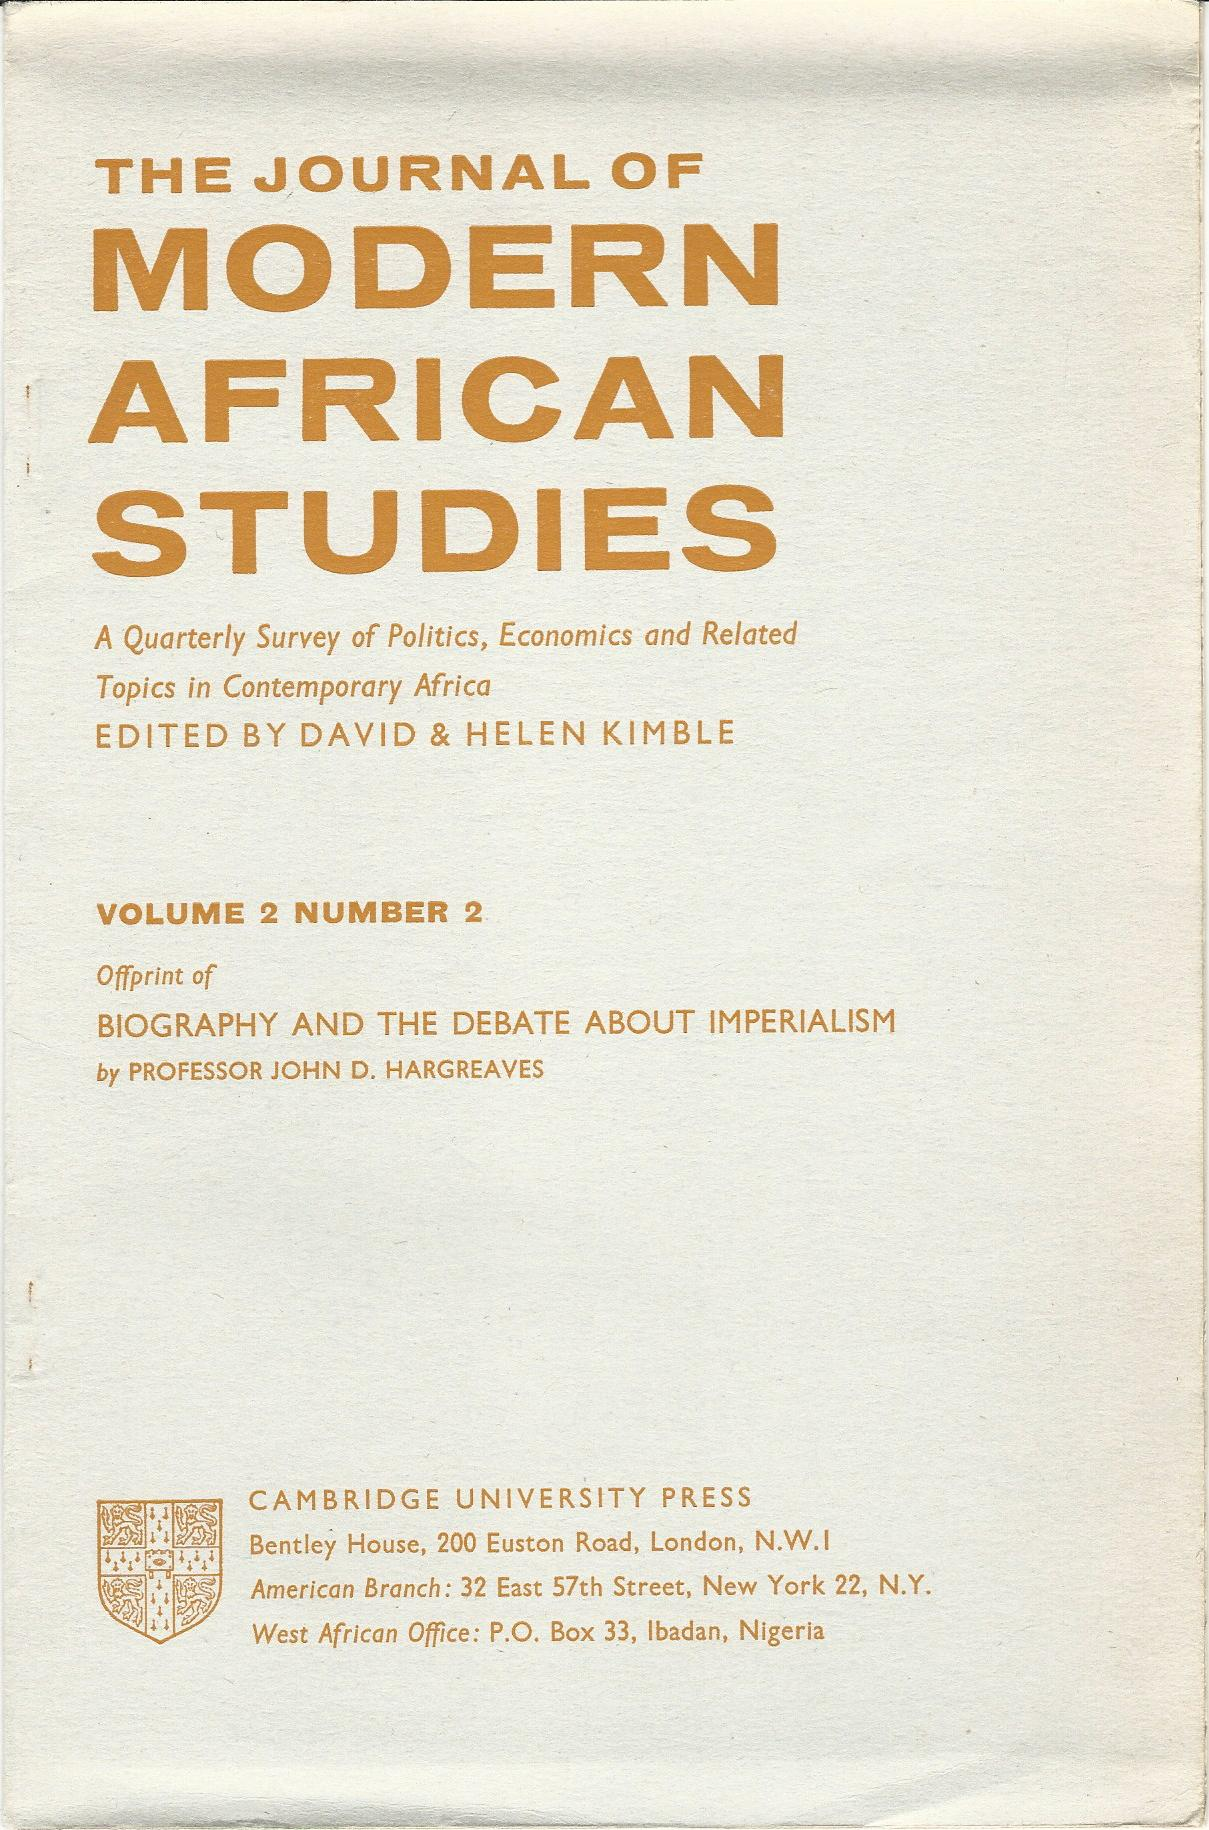 Image for The Journal of Modern African Studies: A Quarterly Survey of Politics, Economics and Related Topics in Contemporary Africa Vol.2, No.2.